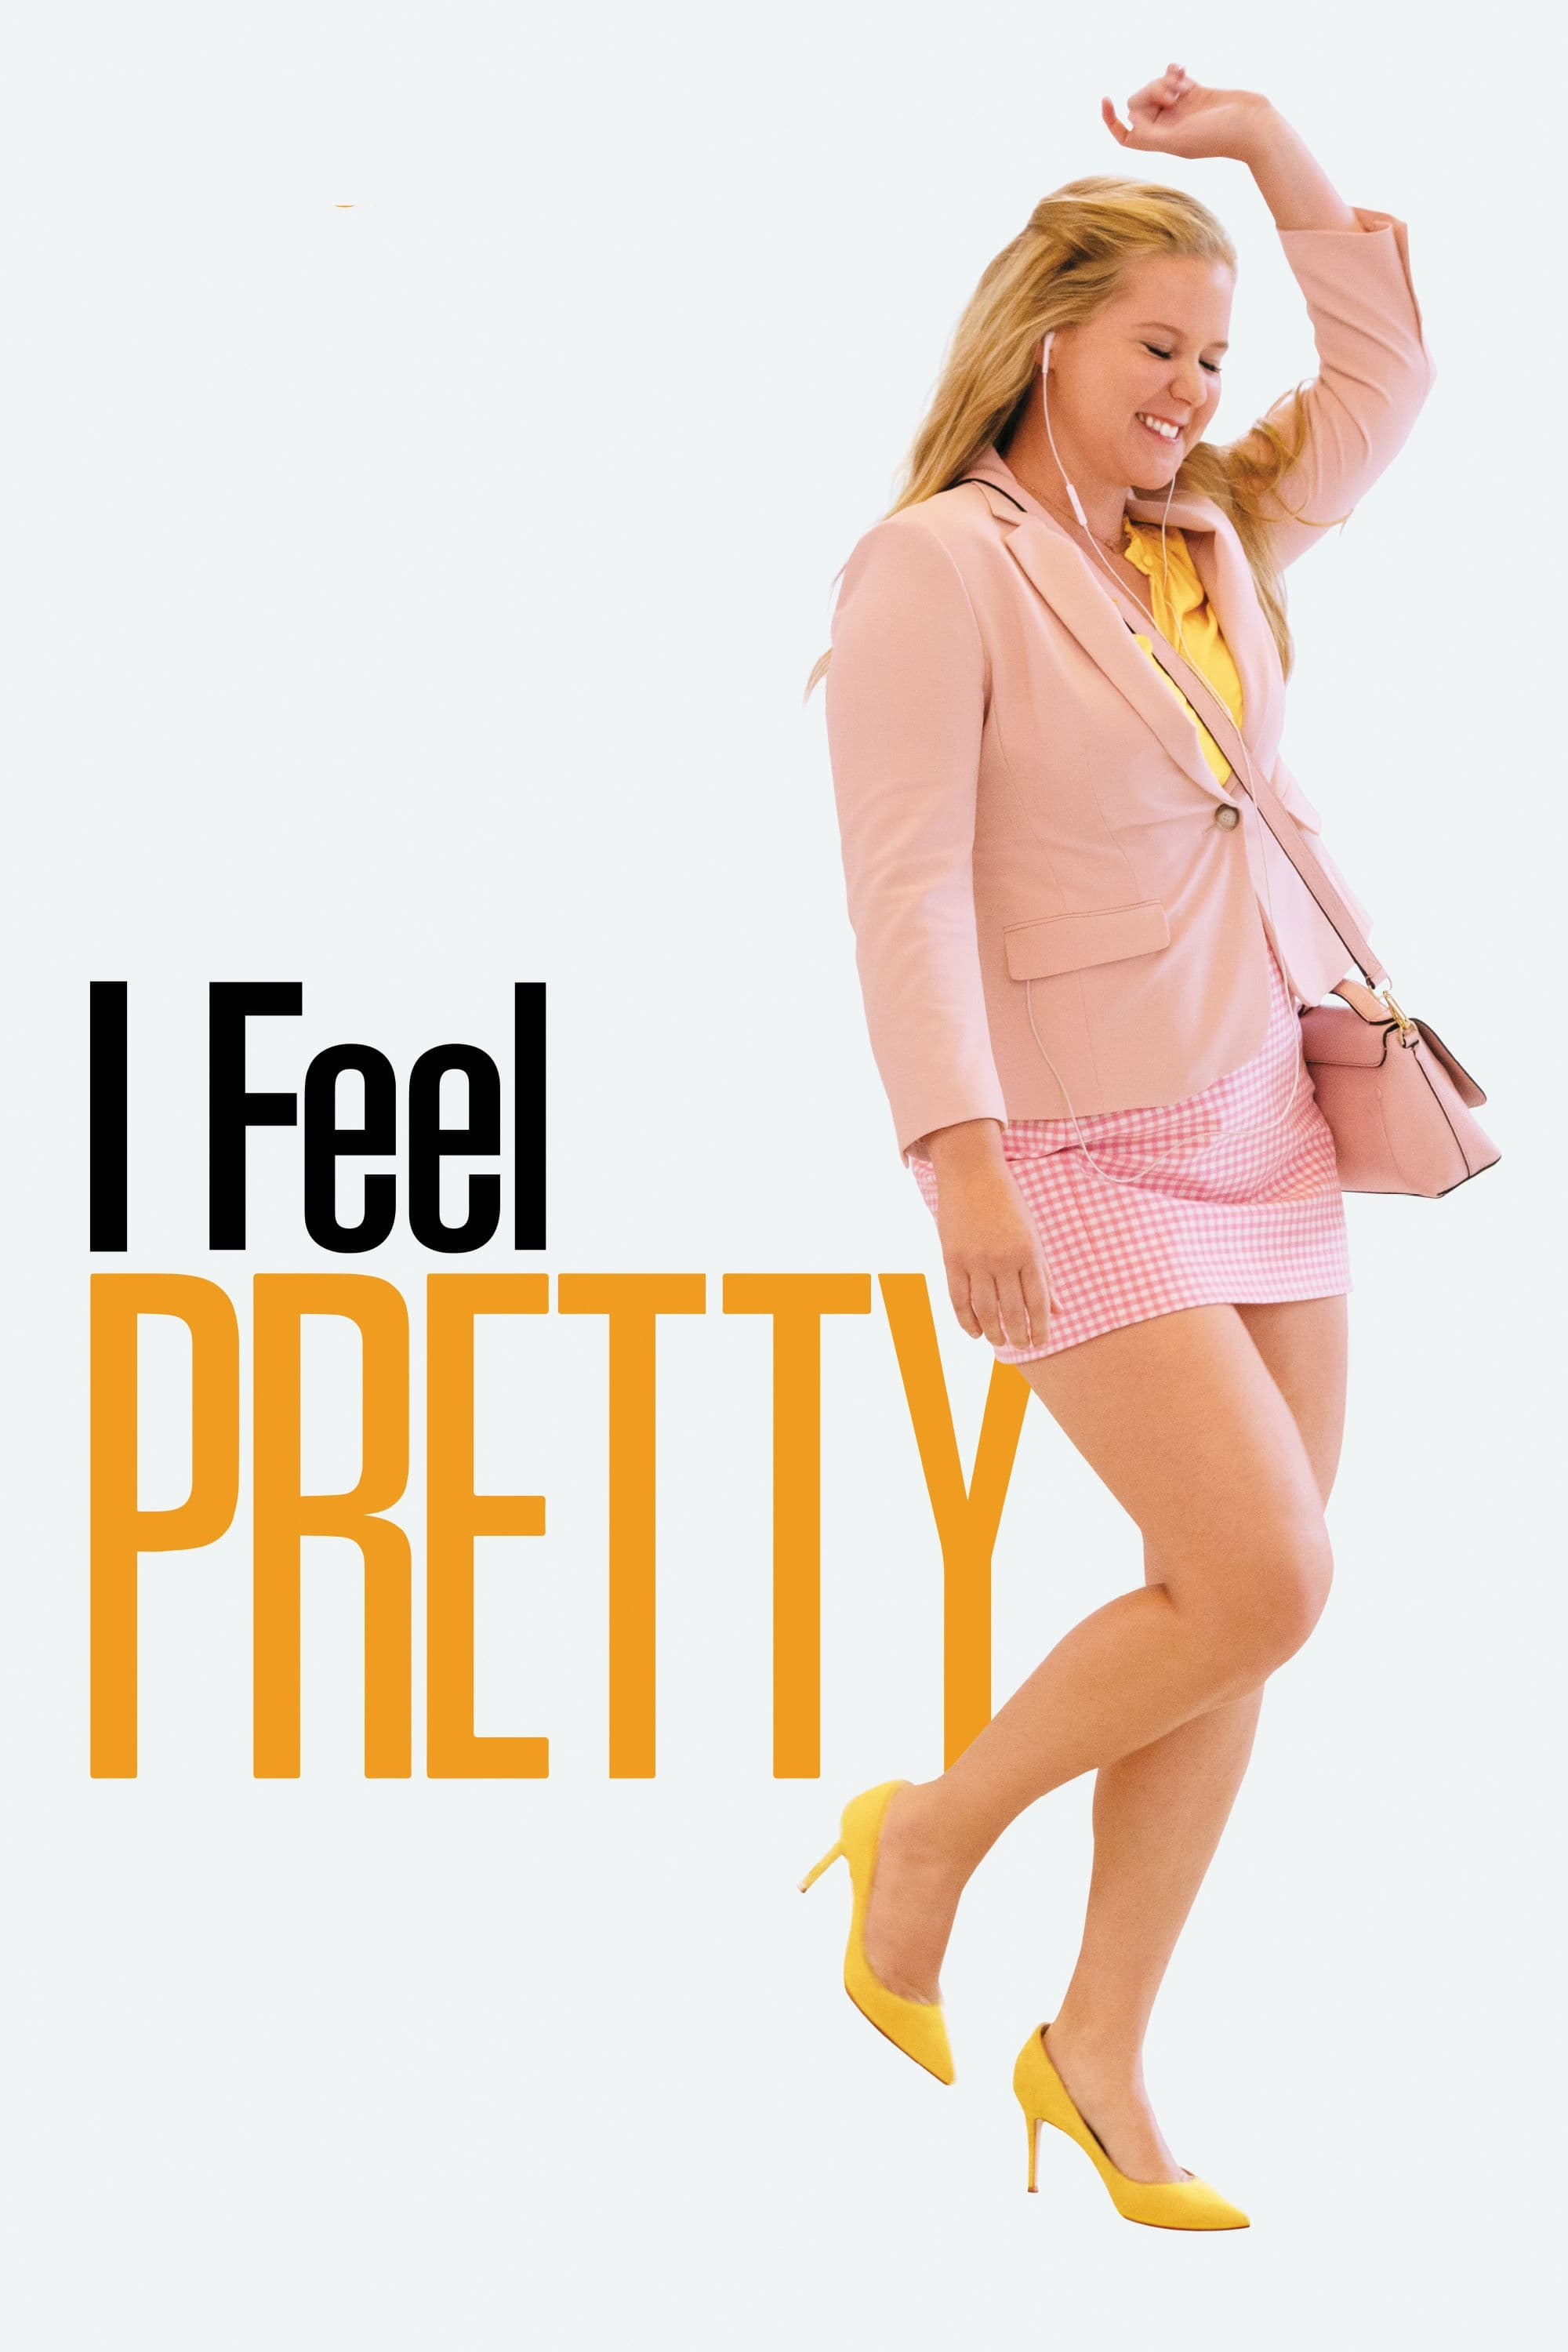 image for I Feel Pretty